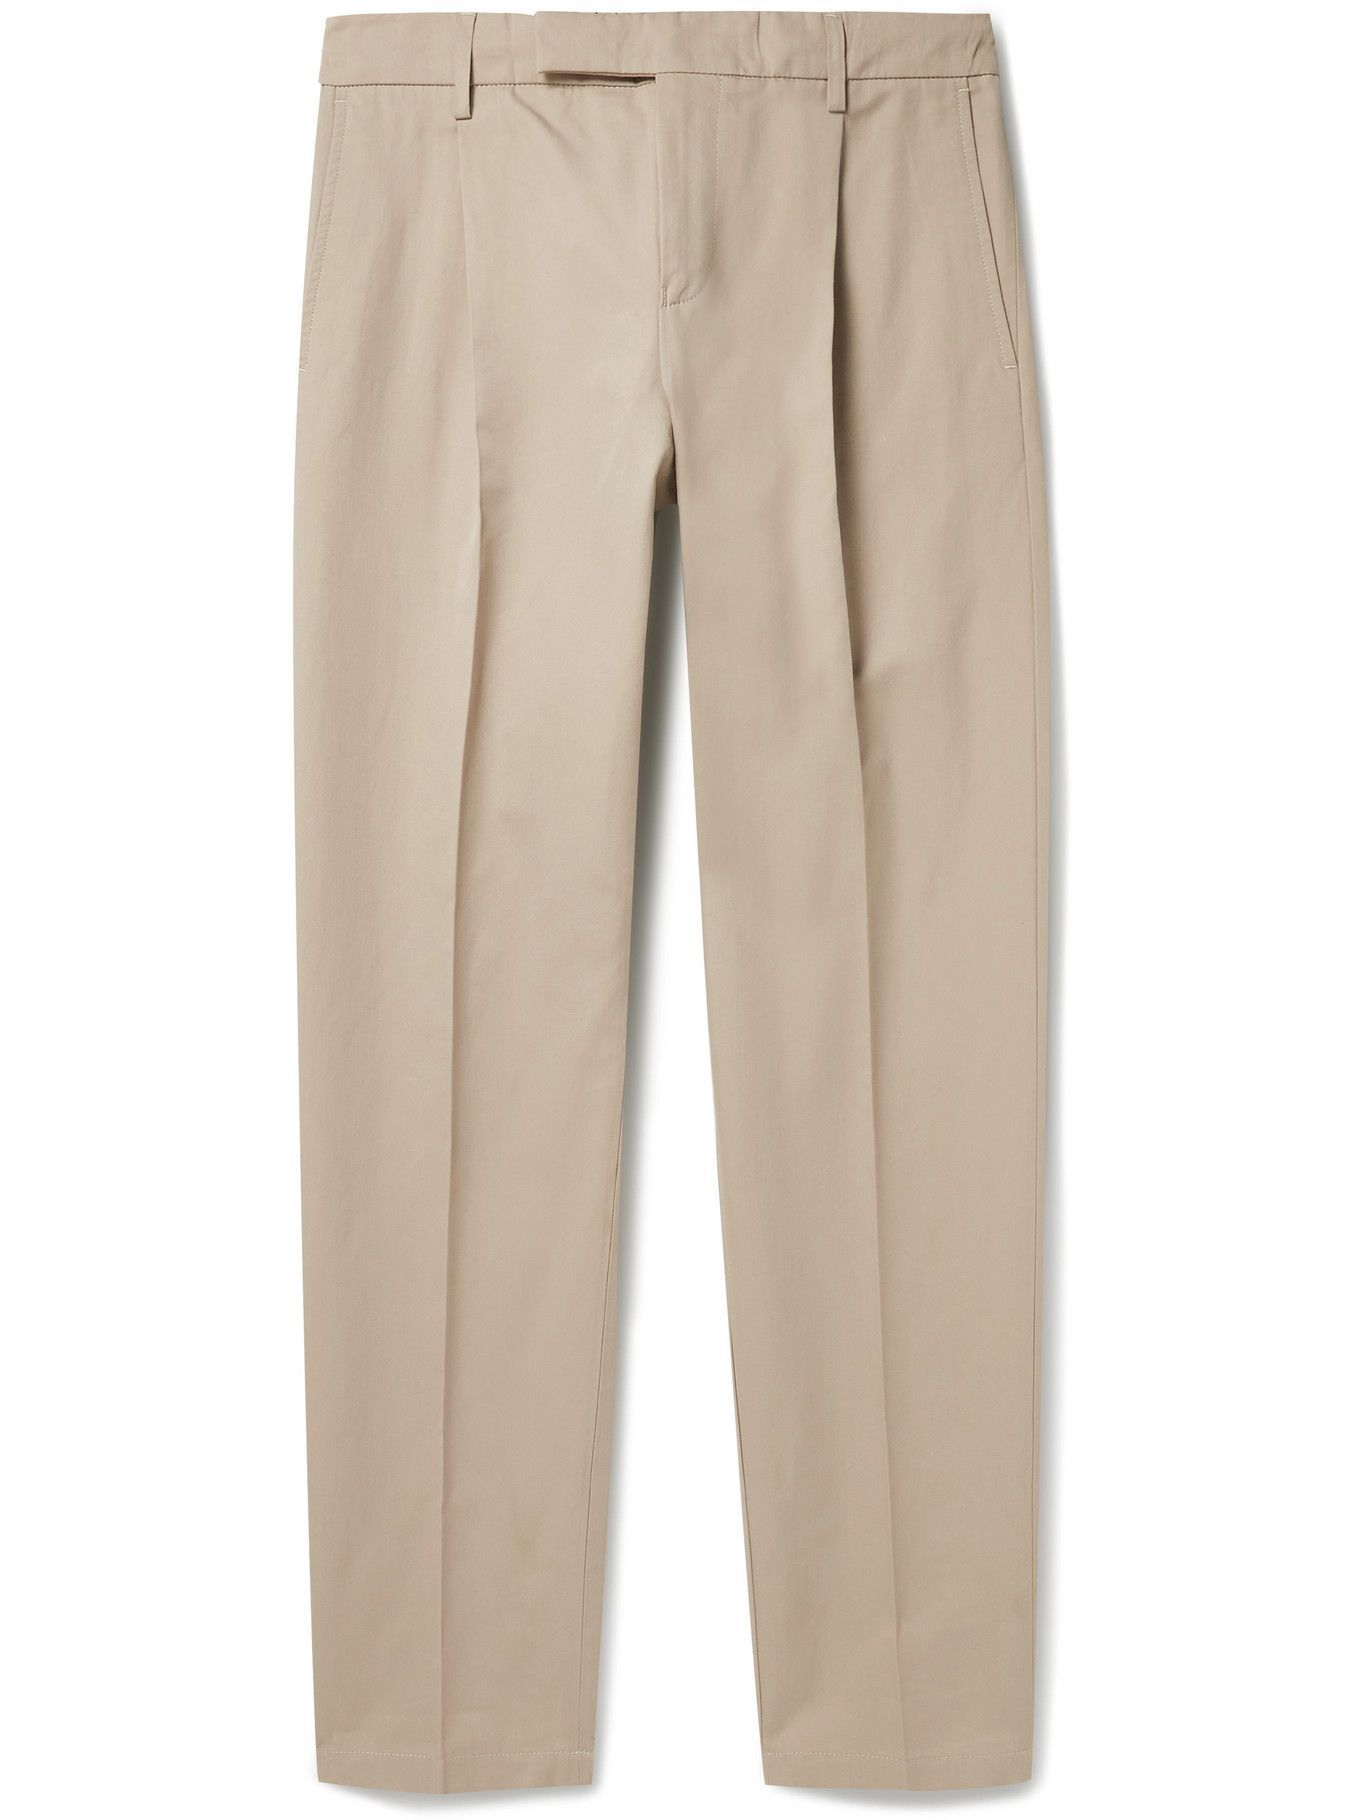 DUNHILL - Tapered Pleated Cotton and Mulberry Silk-Blend Trousers - Neutrals